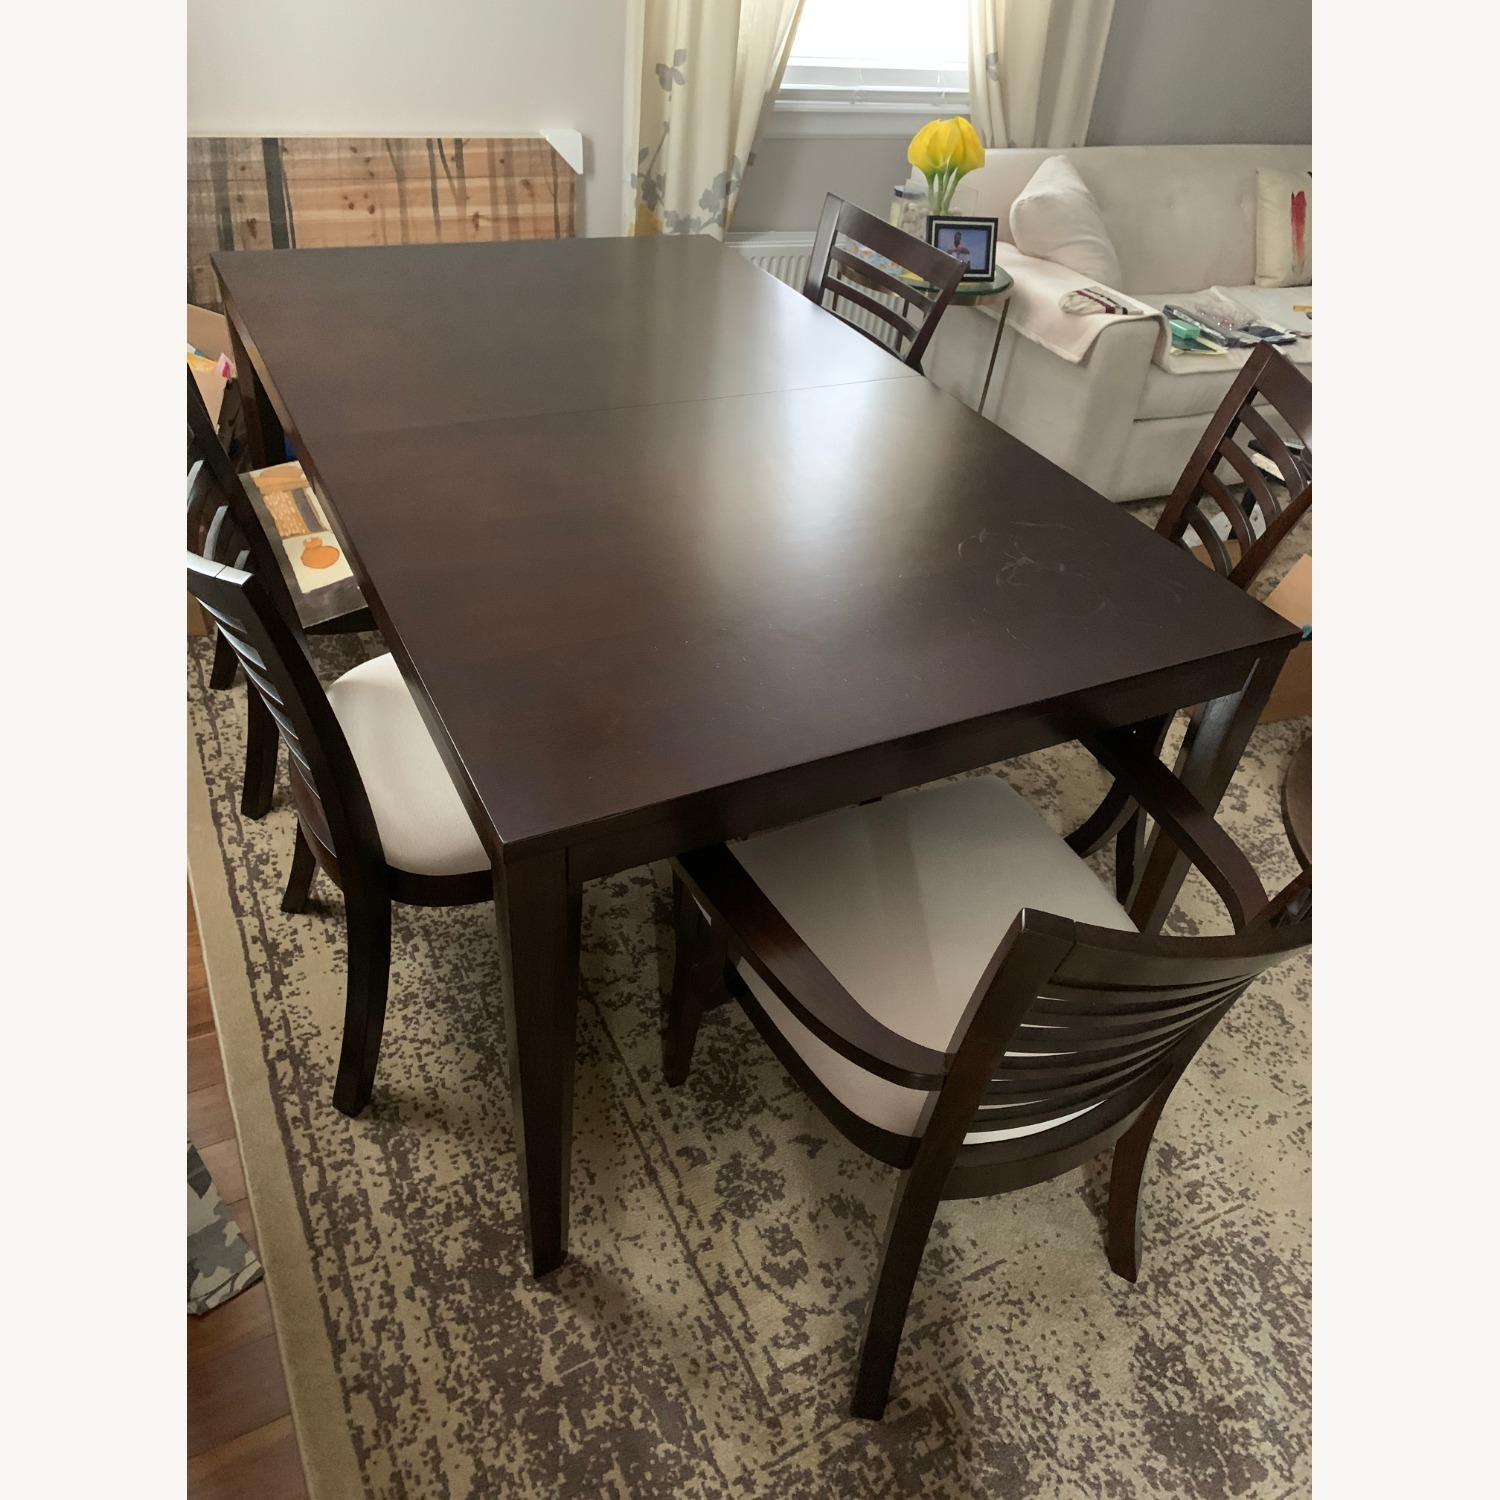 5 Peice Dining Set Plus an Arm Chair - image-1